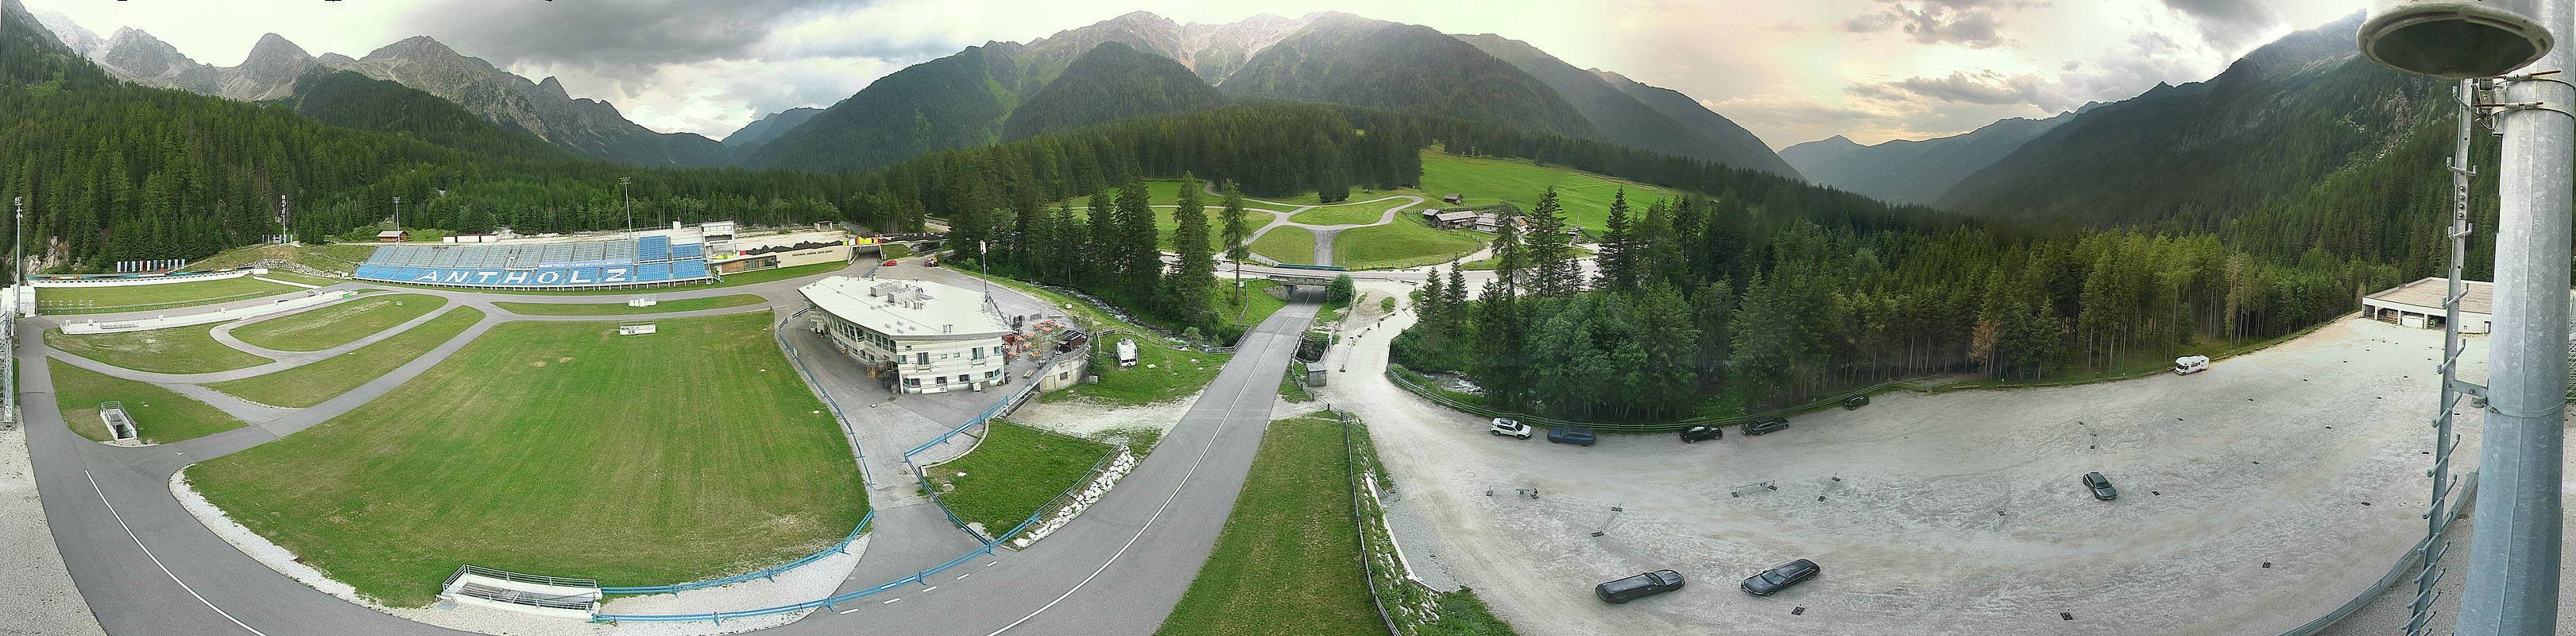 Panoramakamera Biathlon Antholz